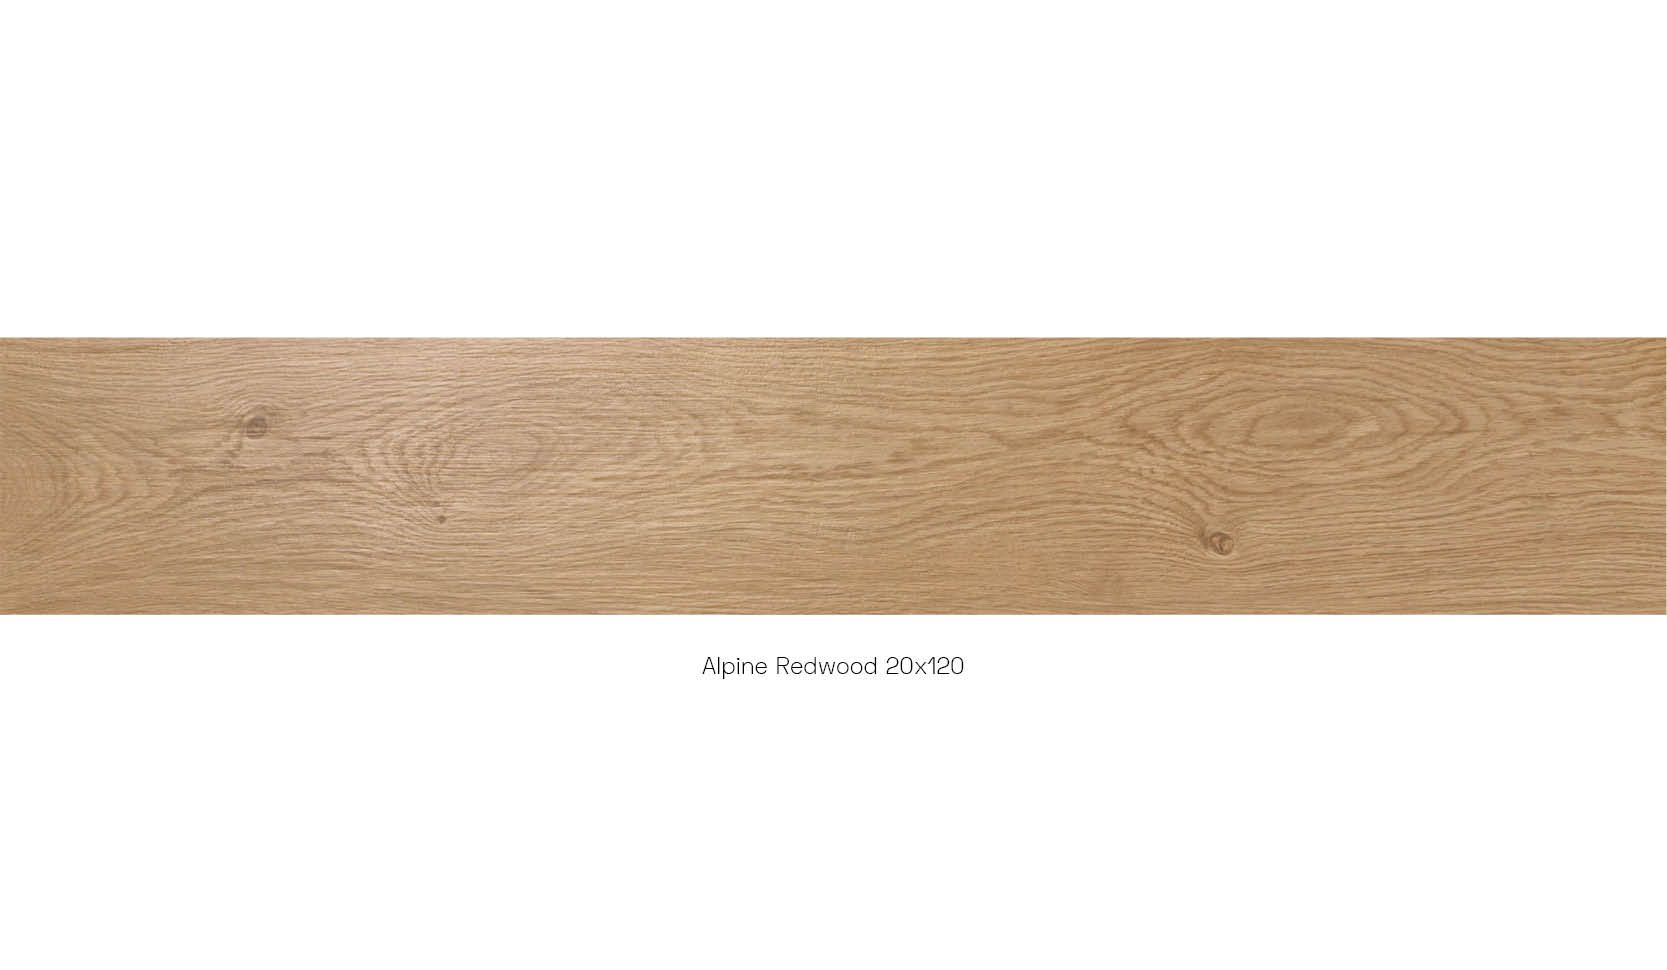 Alpine redwood 20 x 120